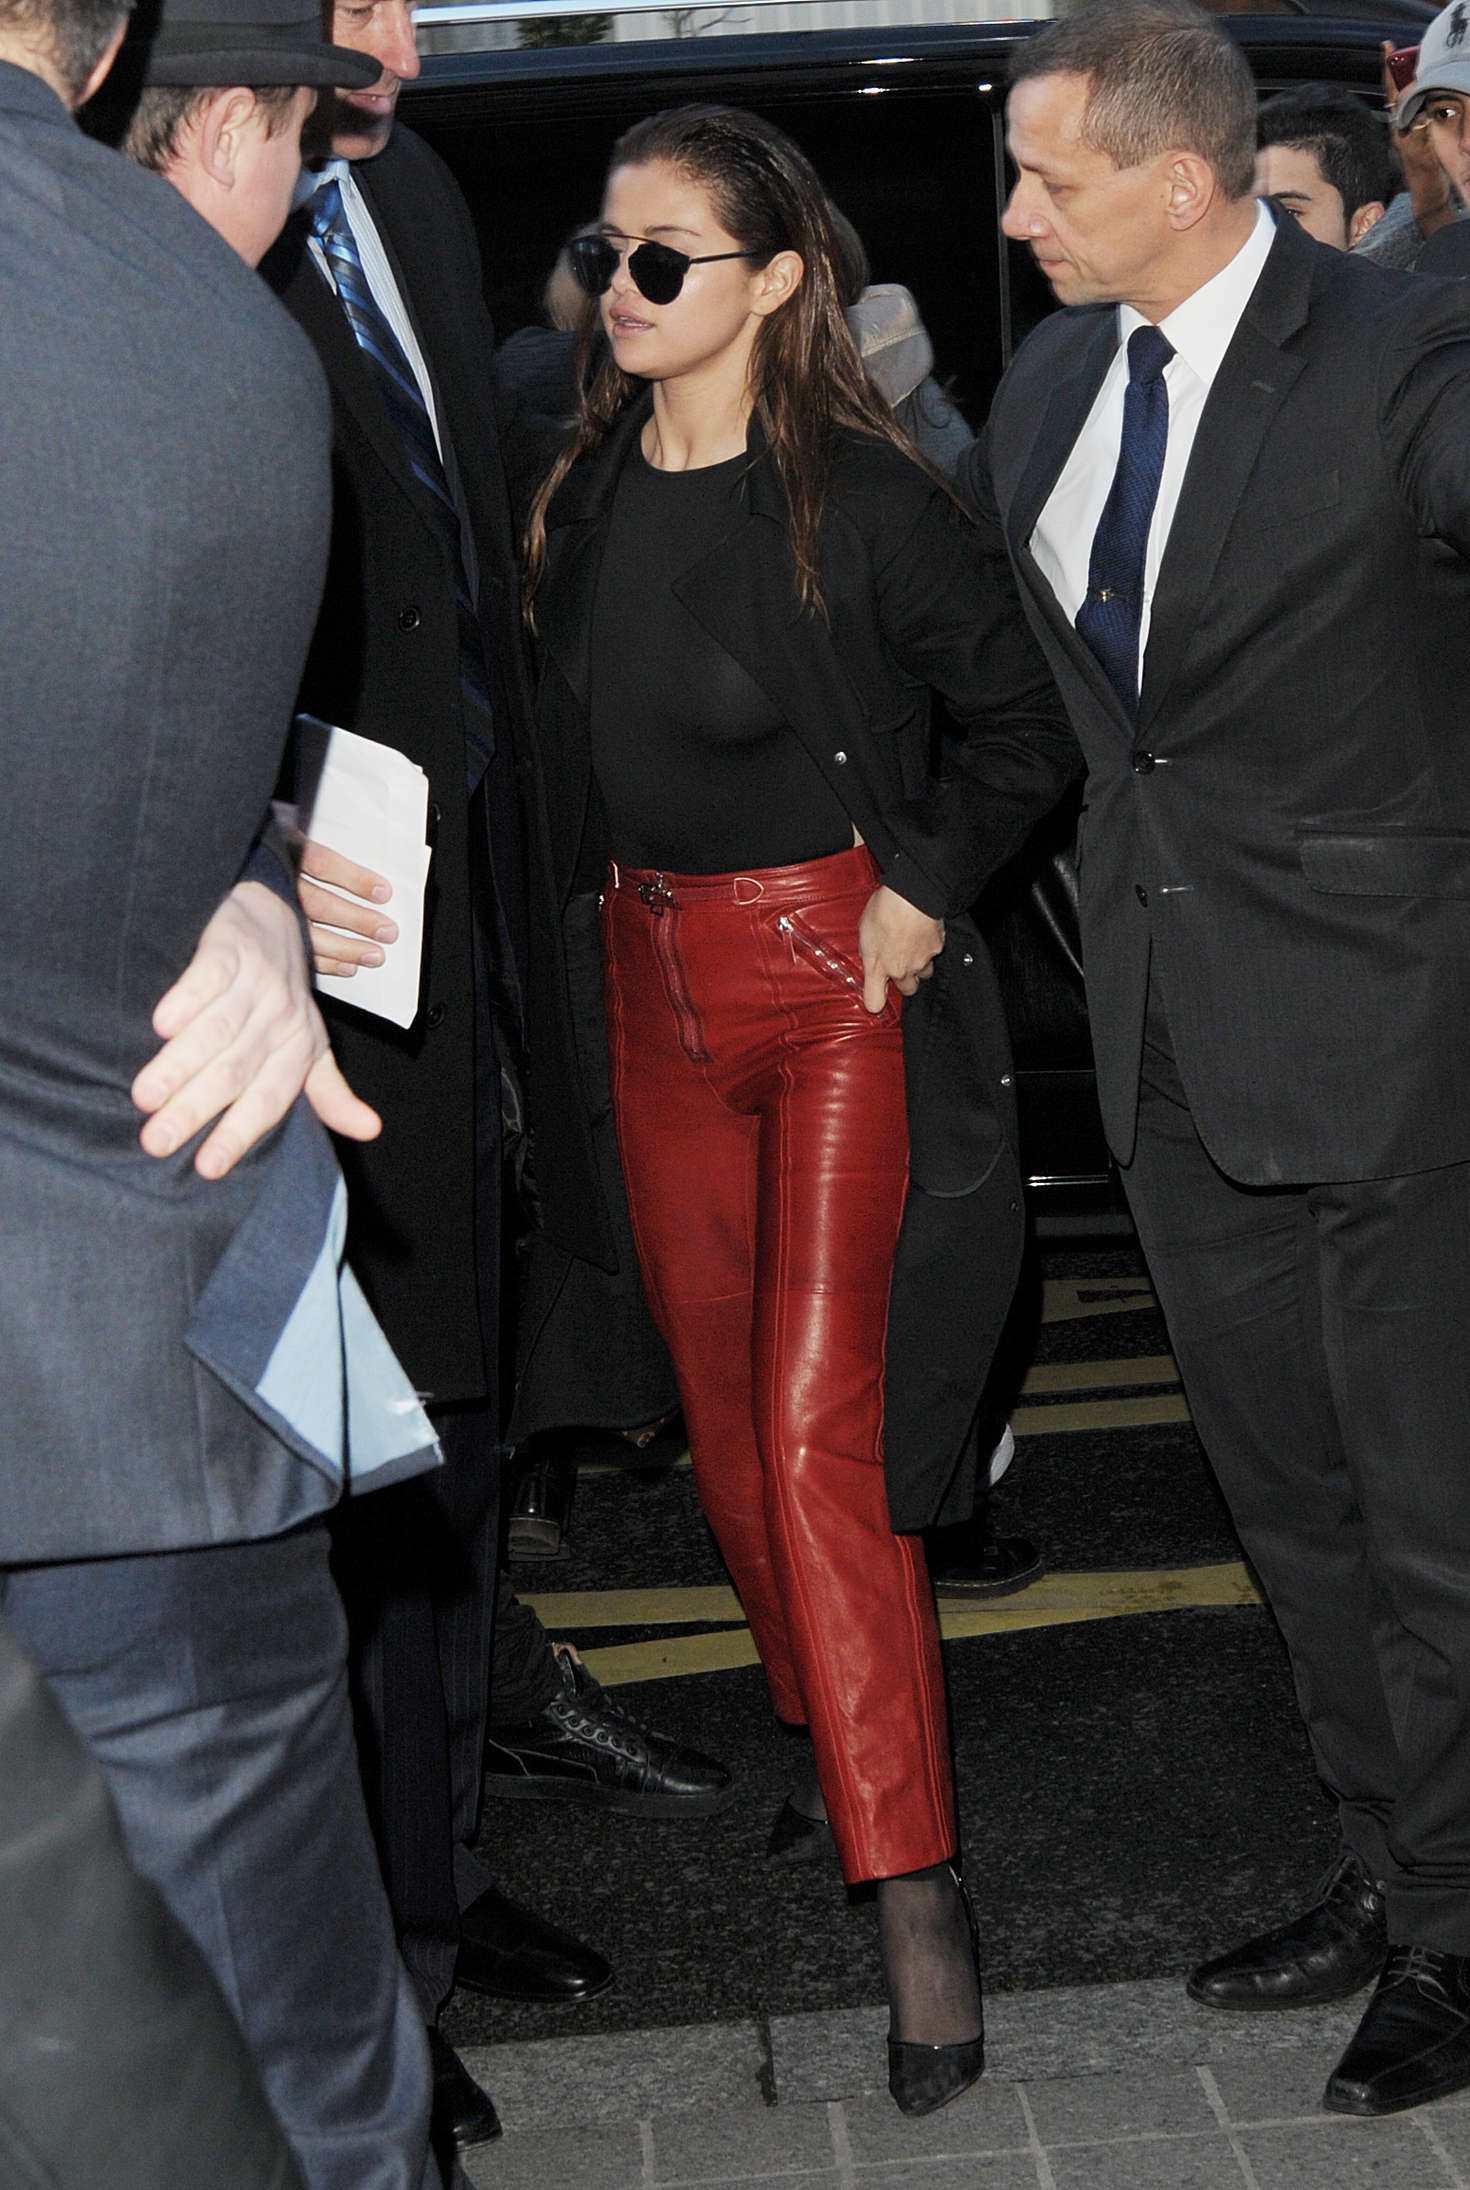 Selena Gomez in Red Leather out in Paris